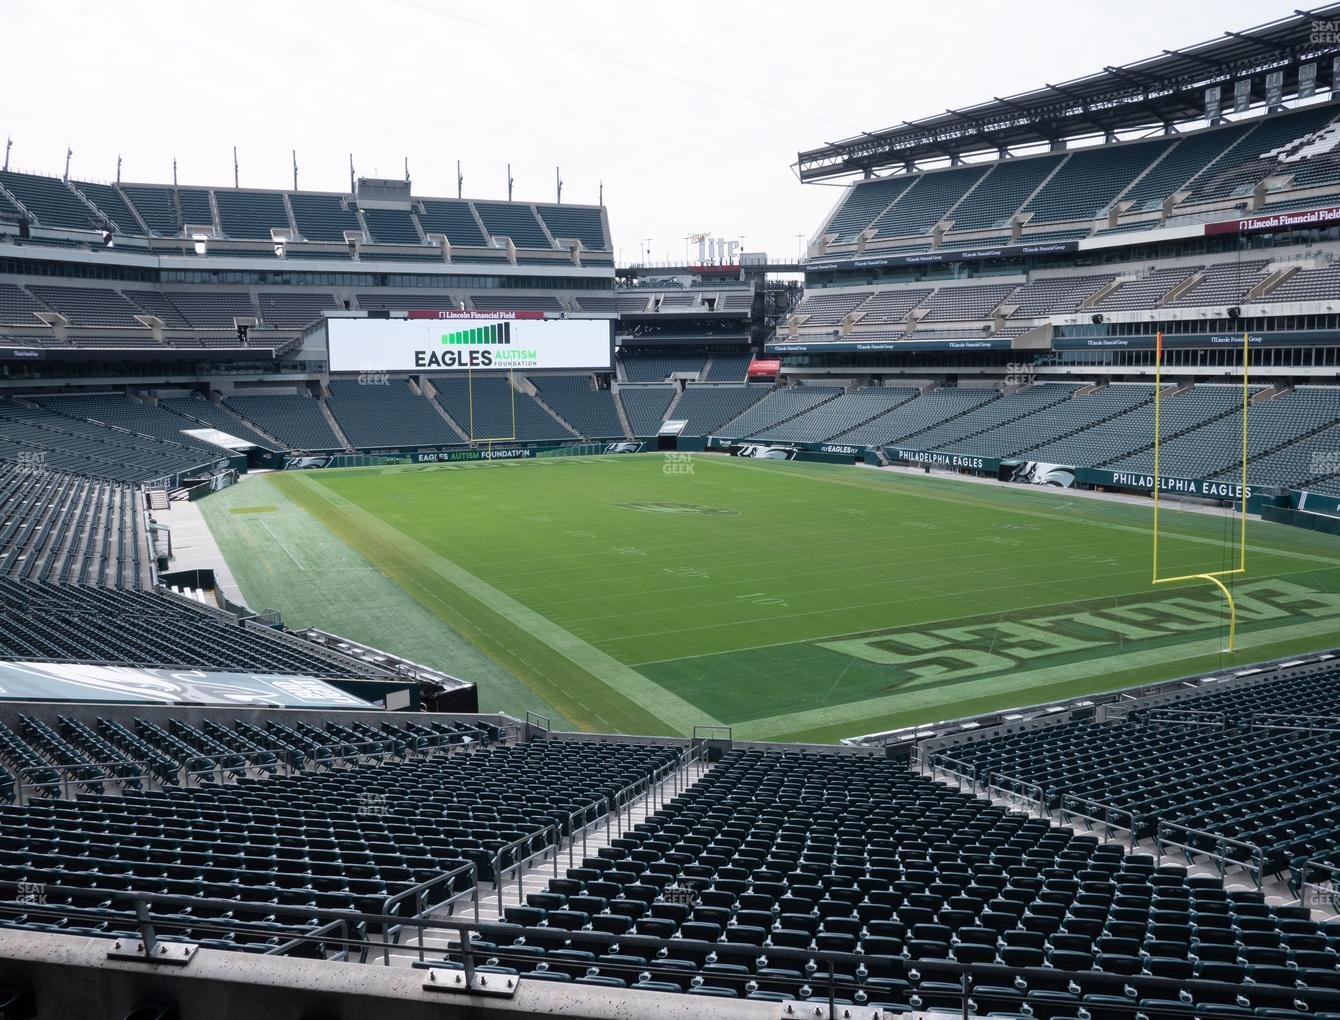 Philadelphia Eagles at Lincoln Financial Field Northeast Terrace 1 View